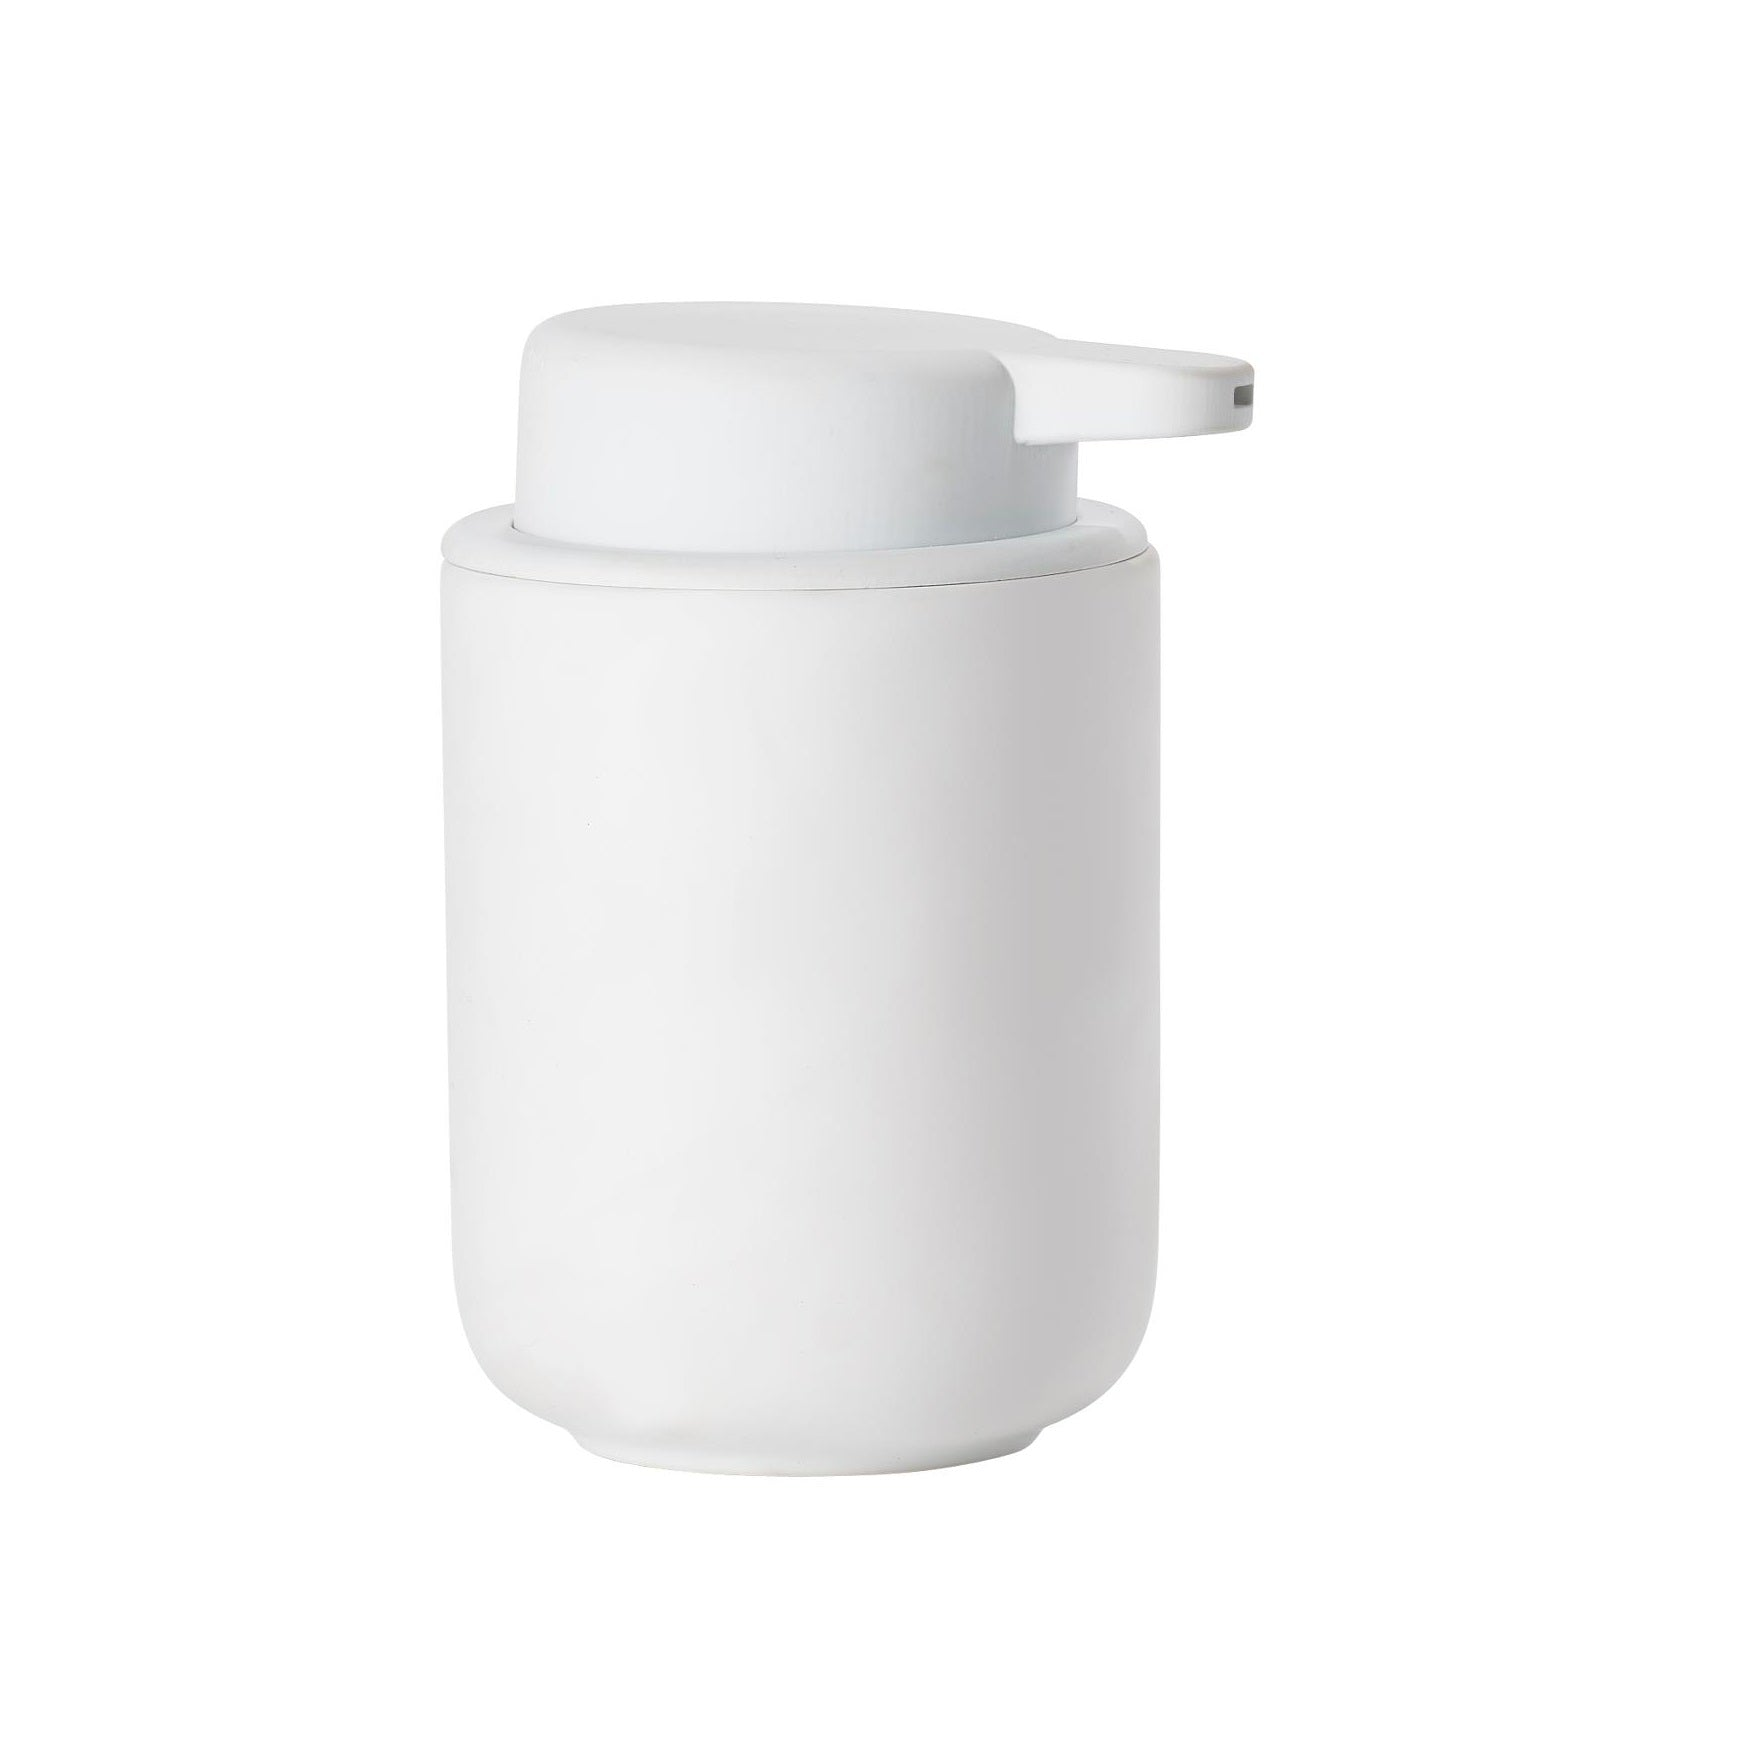 Ume Soap Dispenser- White